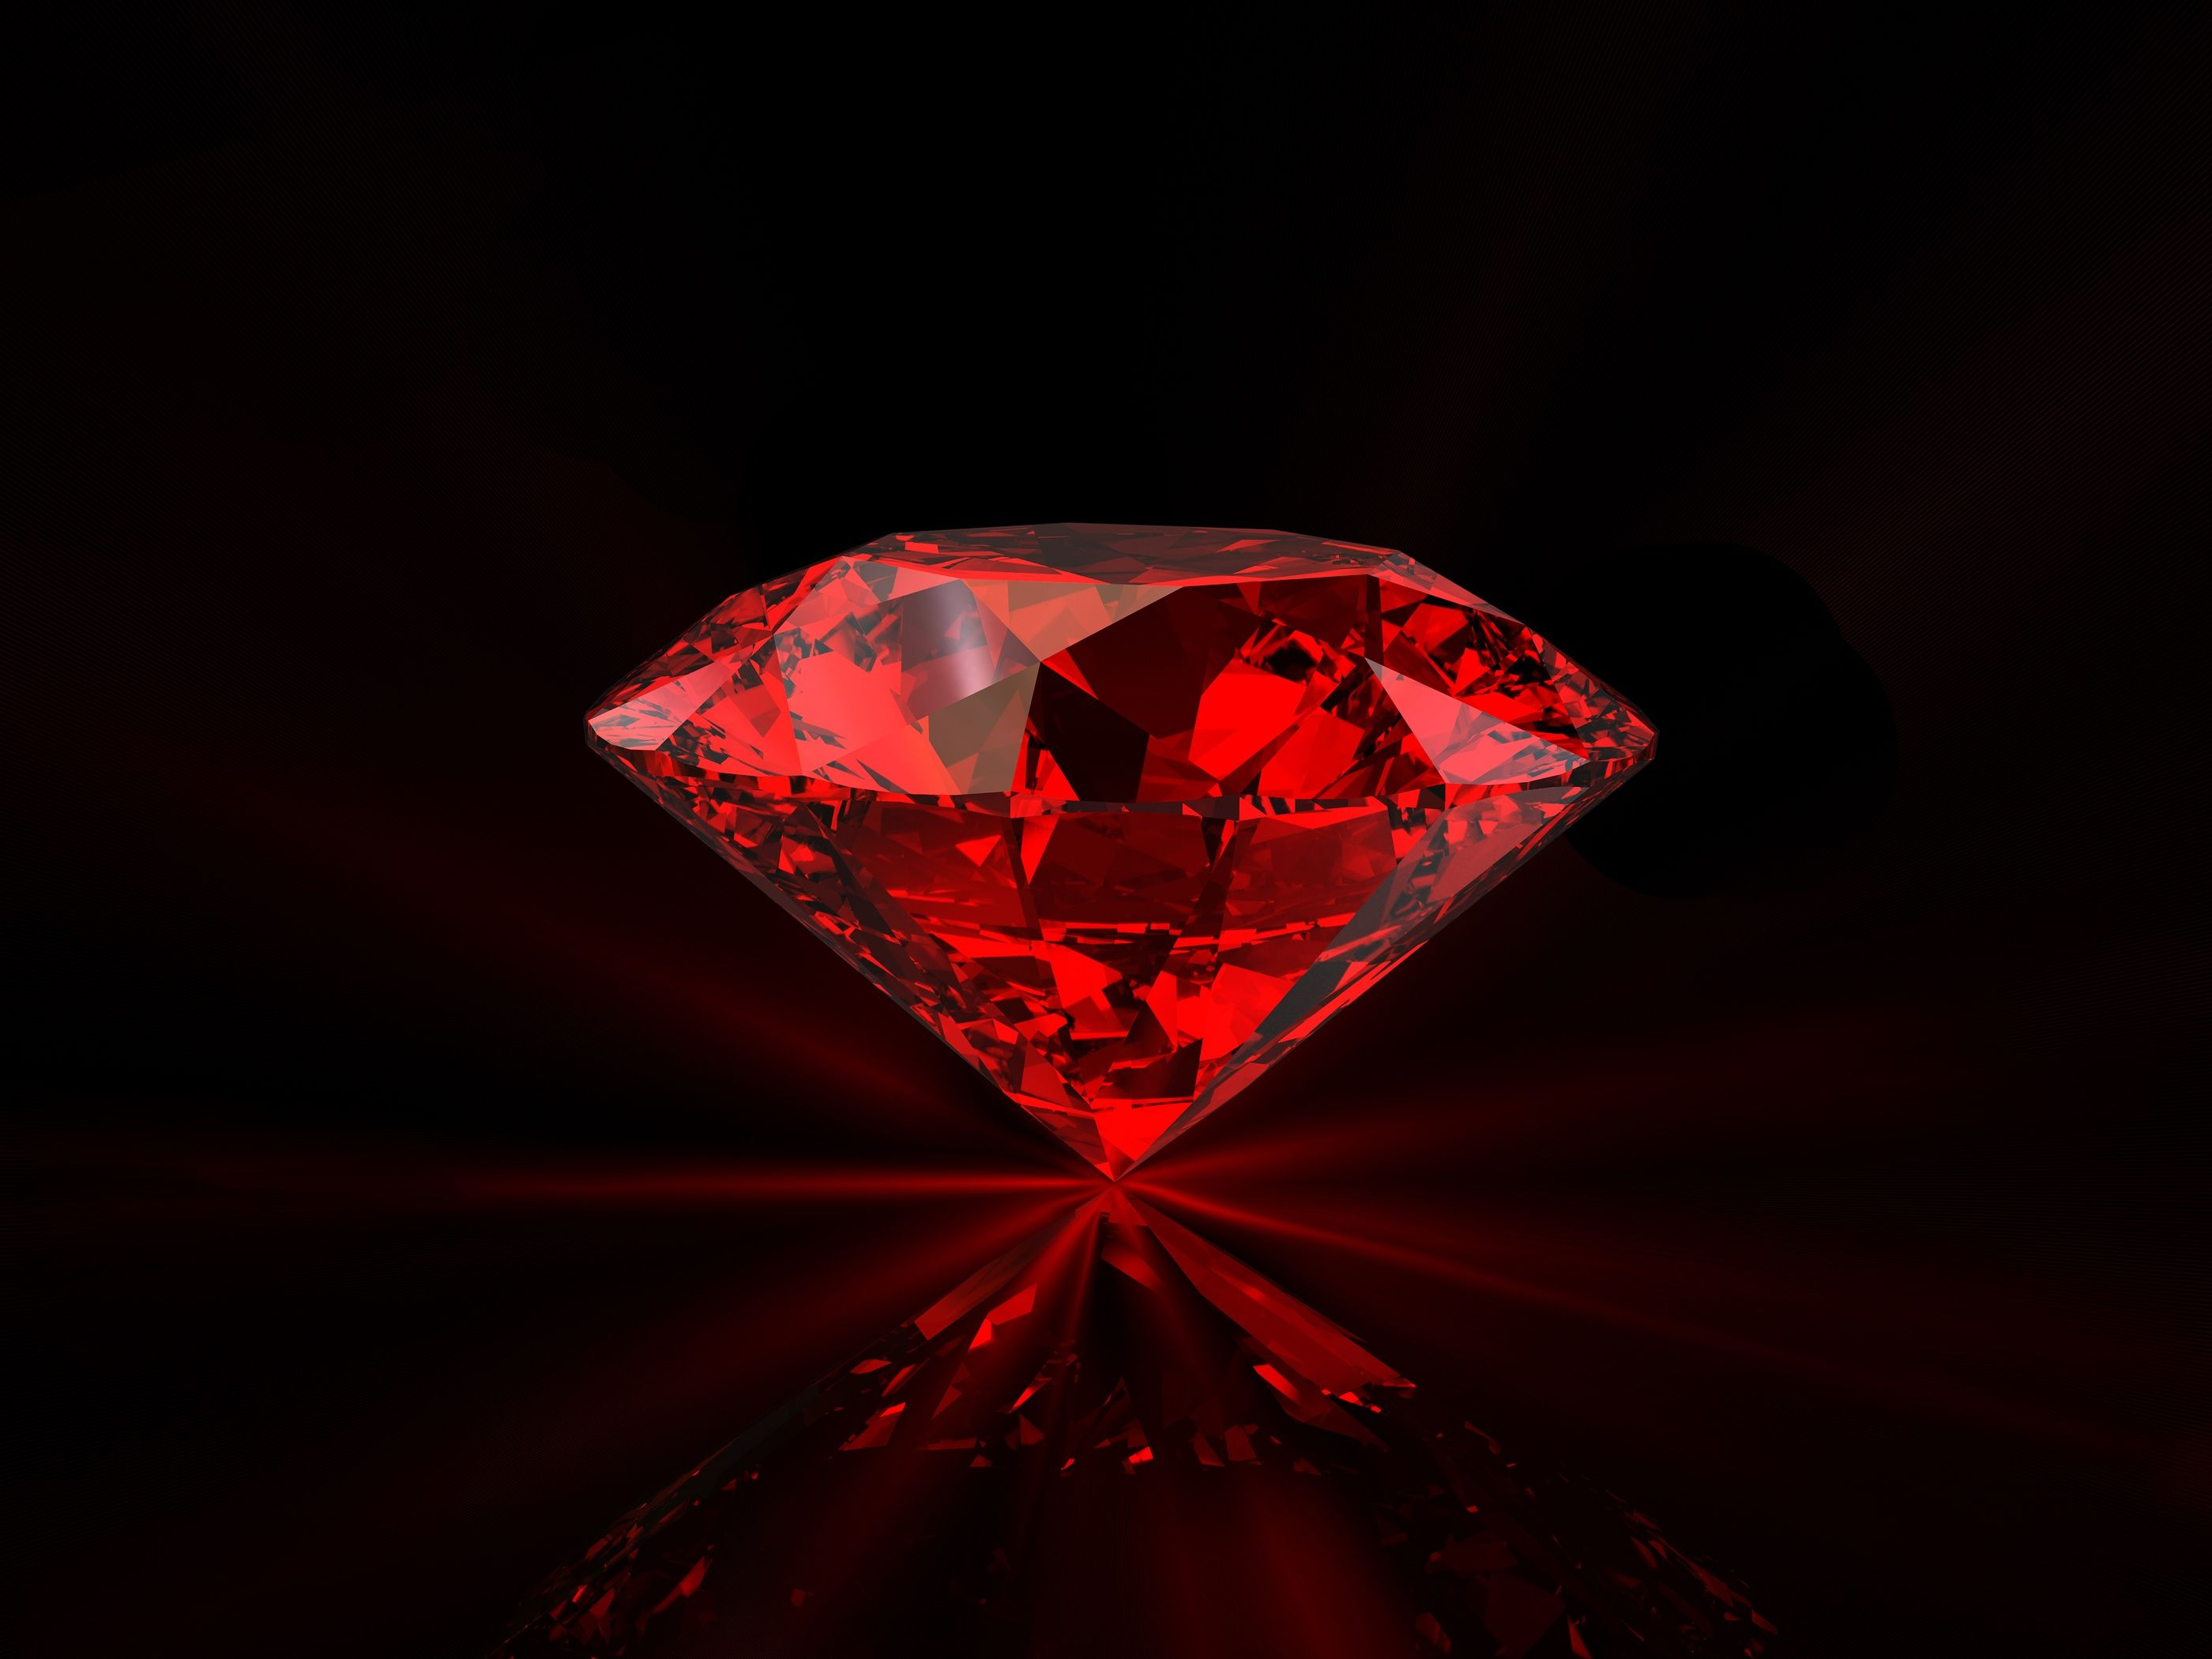 First created in the mid-1990s, Ruby is a popular computer